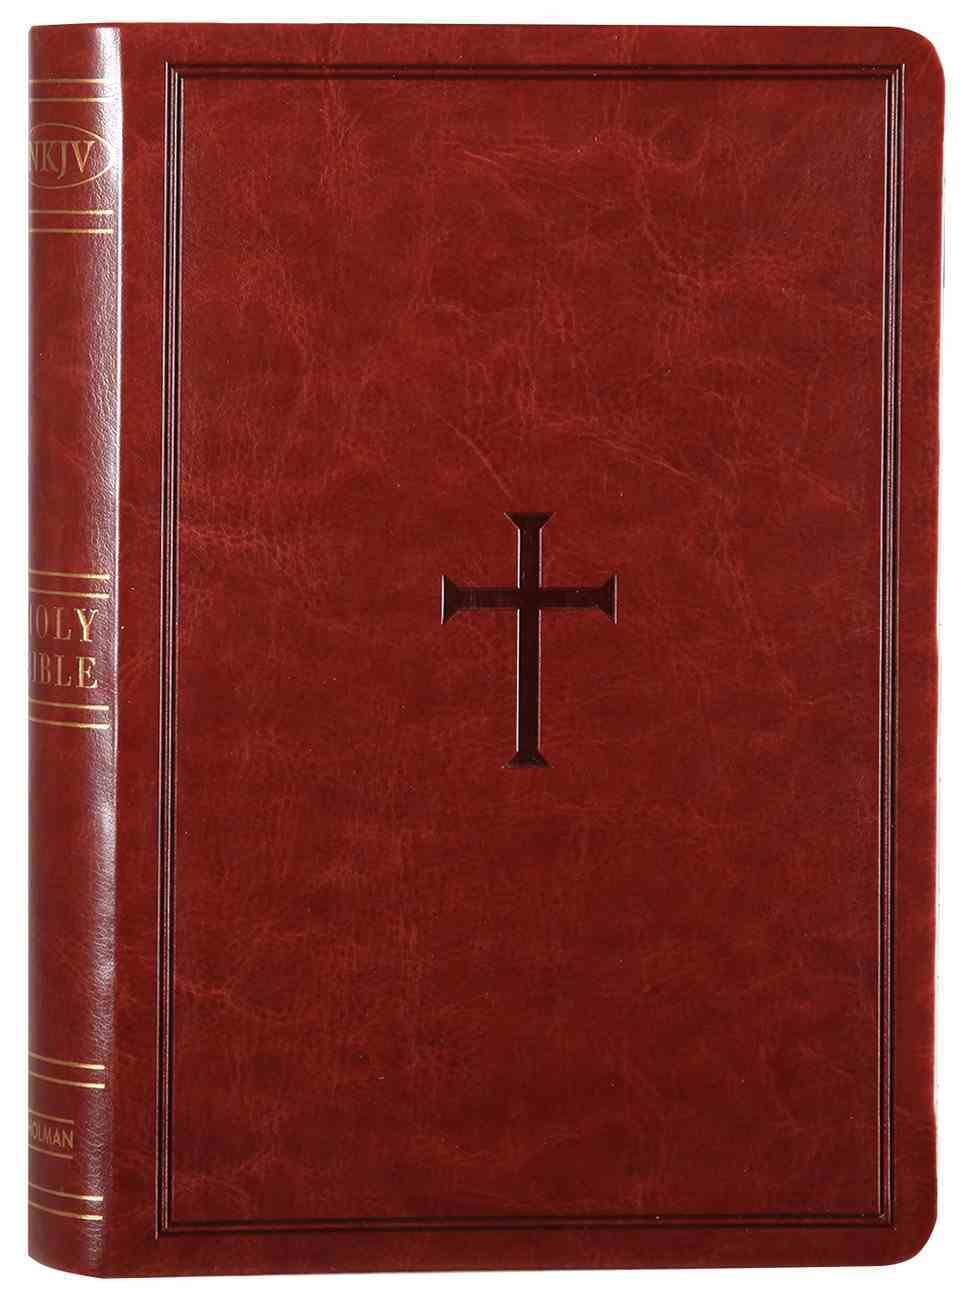 NKJV Large Print Personal Size Reference Bible Brown Premium Imitation Leather